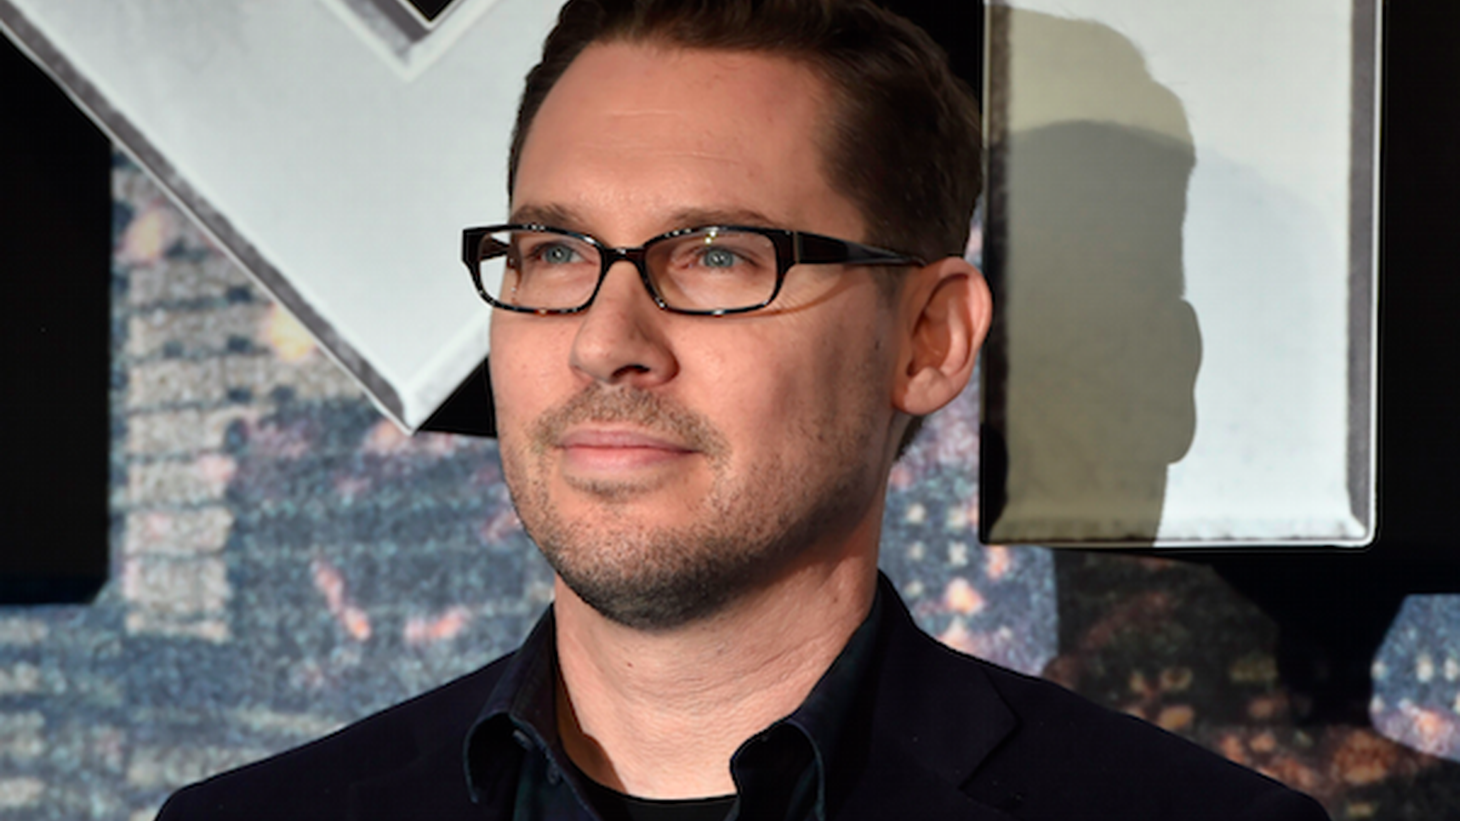 """X-Men"" director Bryan Singer is being sued for sexual assault. Cesar Sanchez-Guzman says Singer raped him at a yacht party when he was 17, and then told him he could get a Hollywood career if he kept quiet."